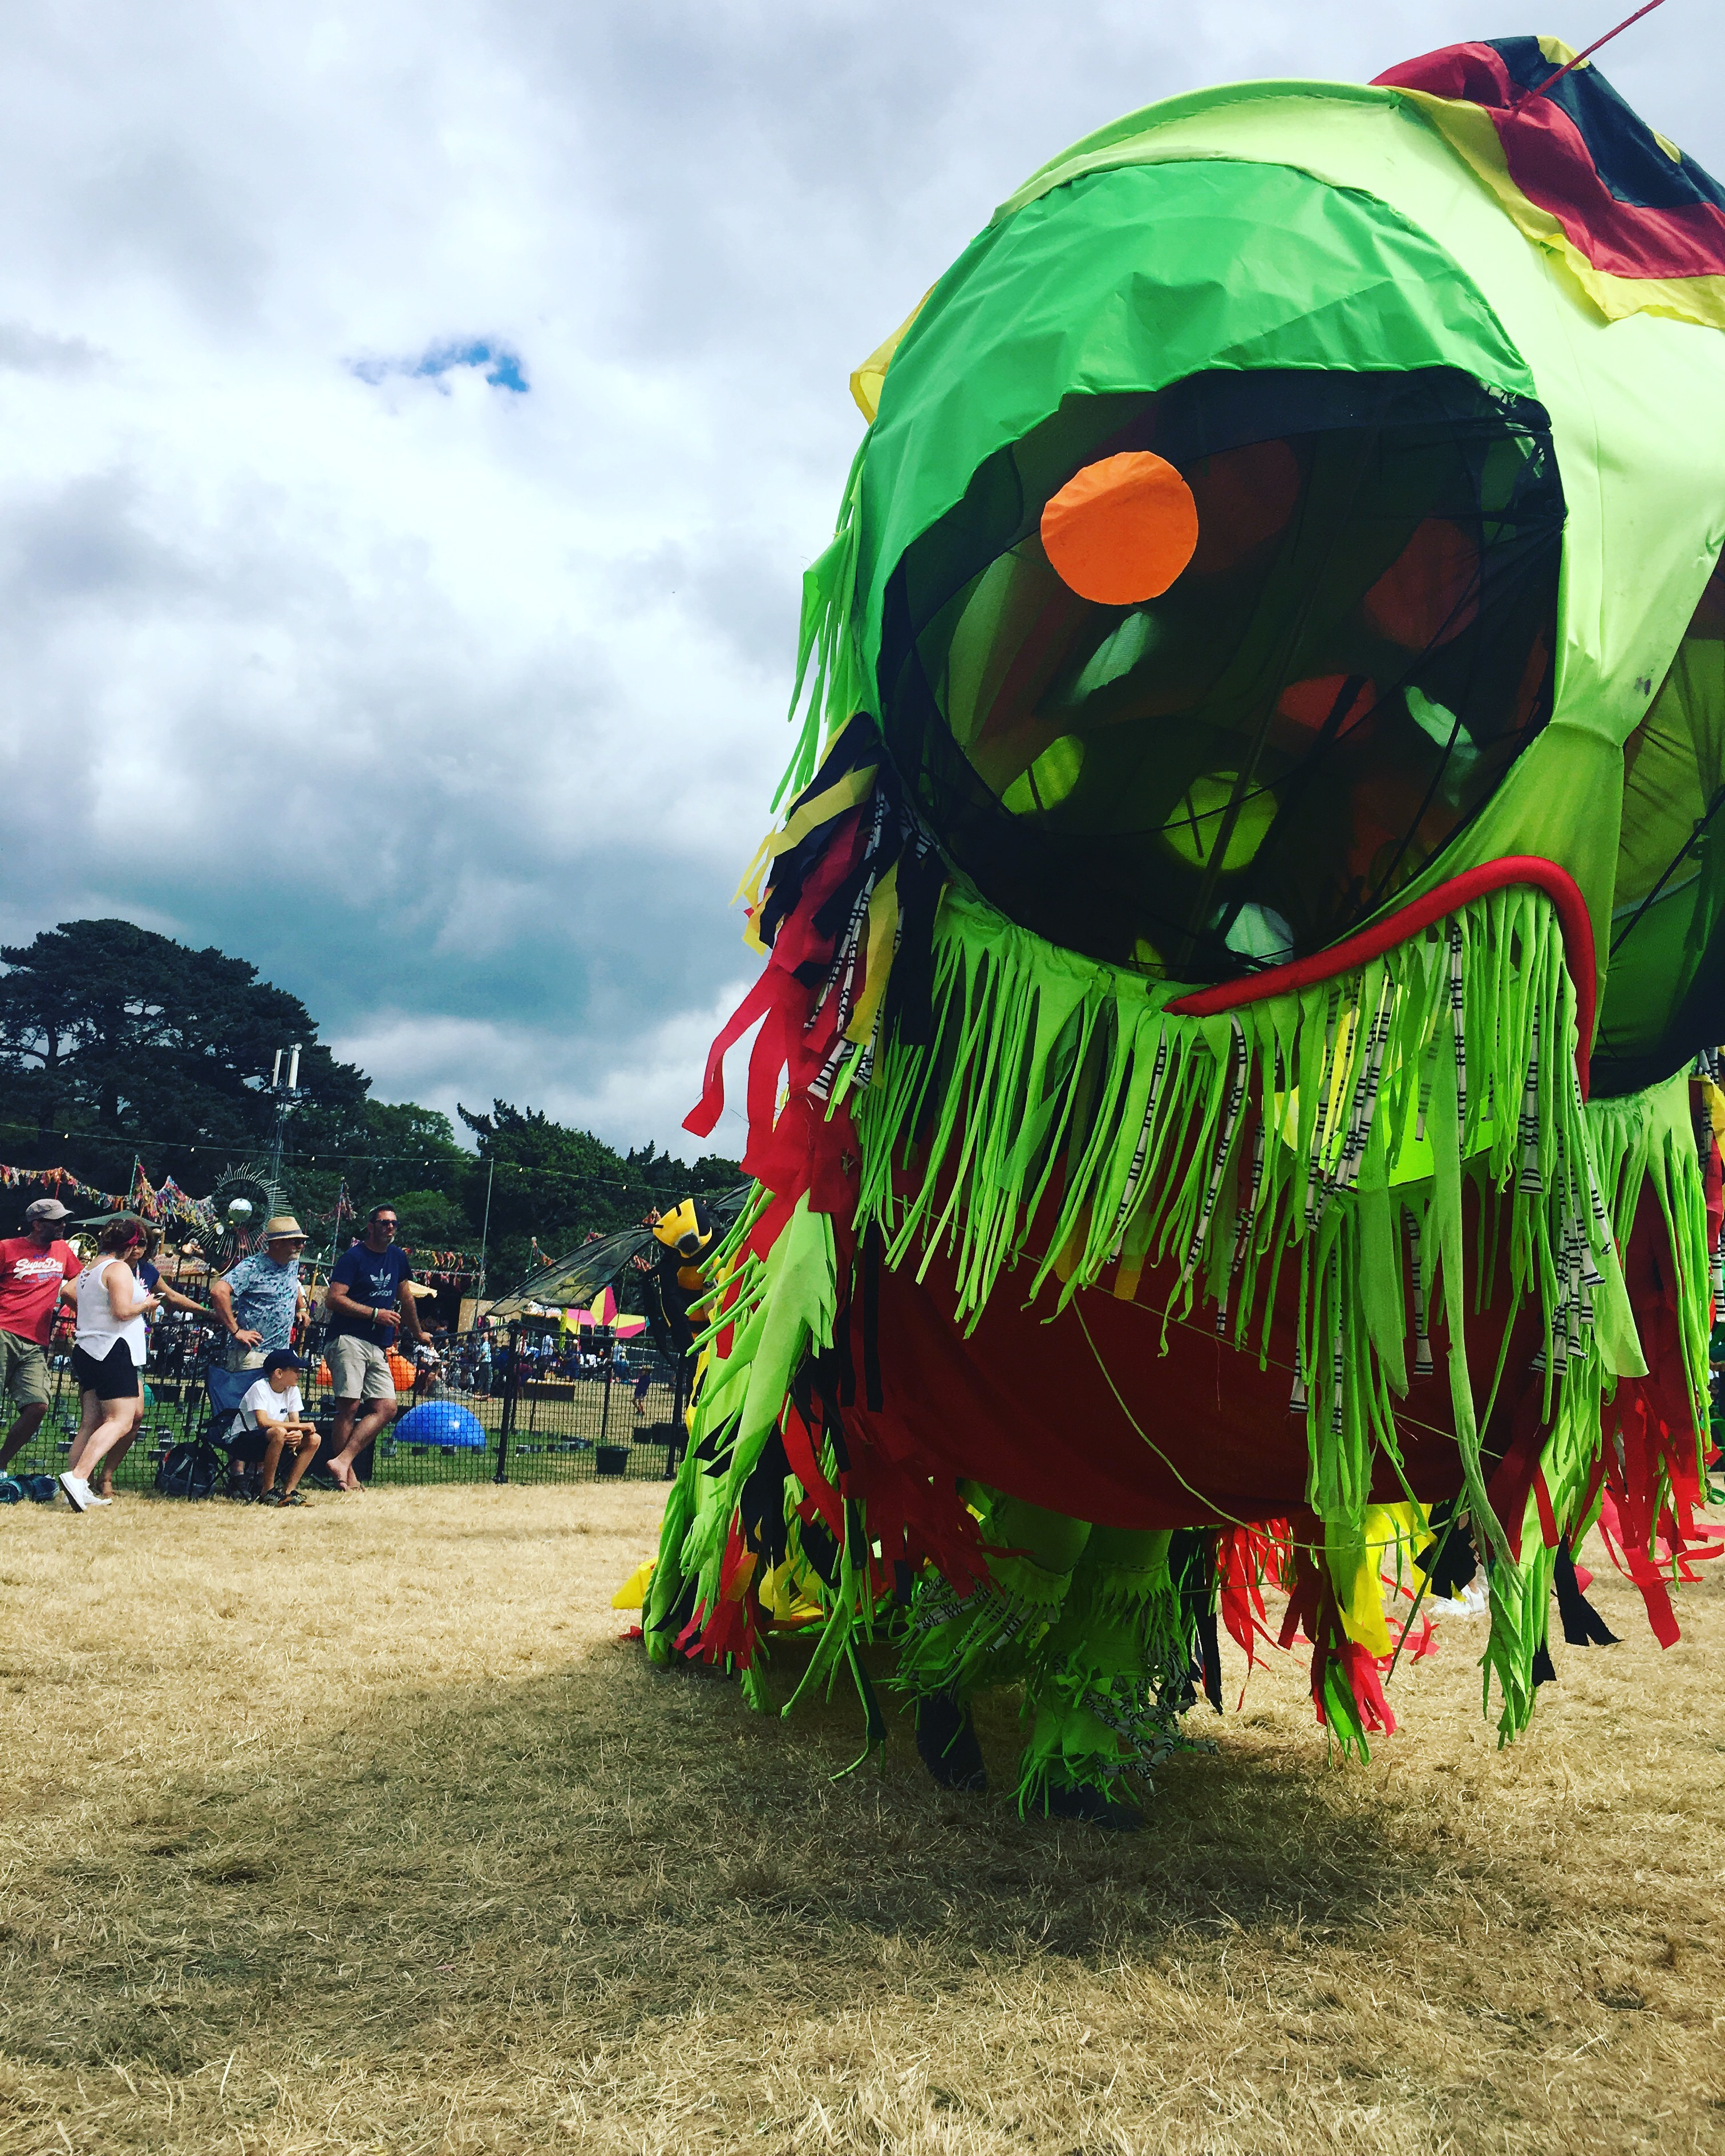 Camp Bestival Family Festival Fun 2014: A Festival For All:Camp Bestival